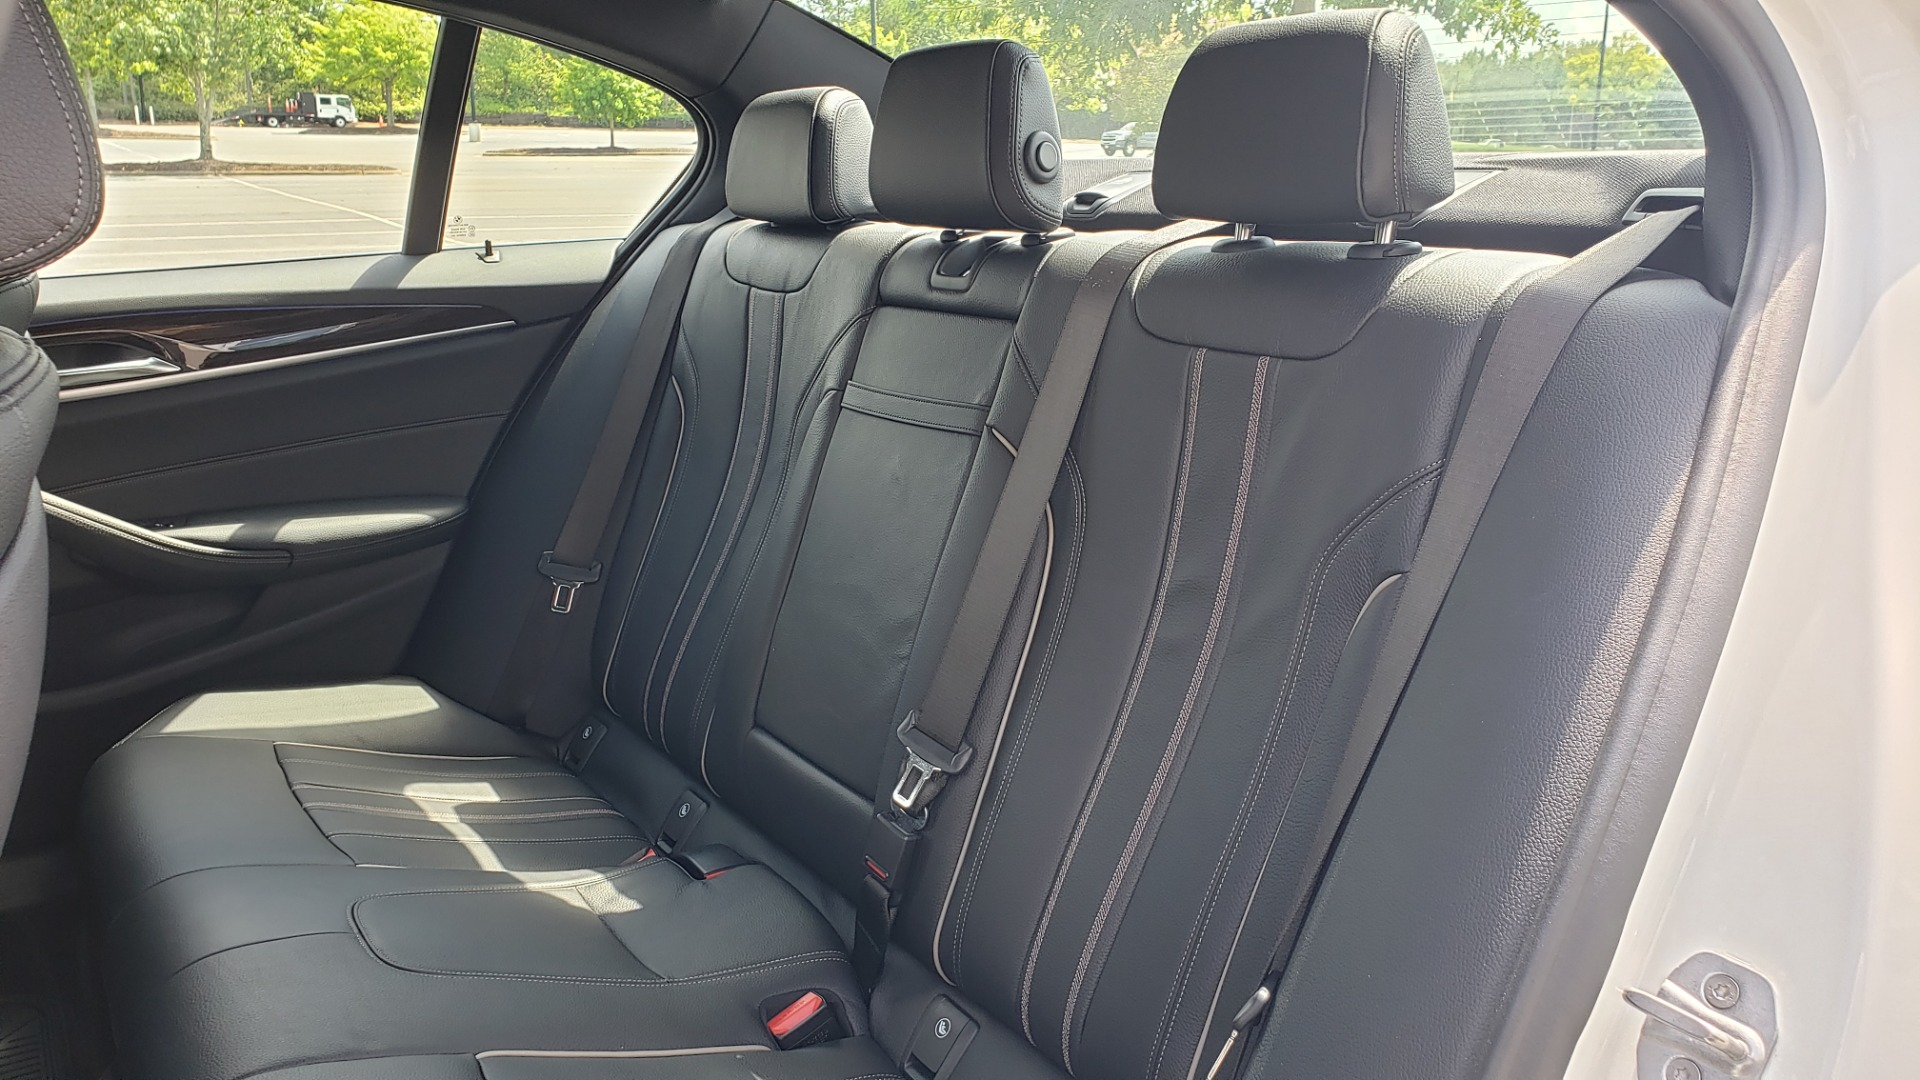 Used 2018 BMW 5 SERIES 530I XDRIVE PREMIUM / PARK ASST / NAV / SUNROOF / REARIEW for sale $37,795 at Formula Imports in Charlotte NC 28227 58